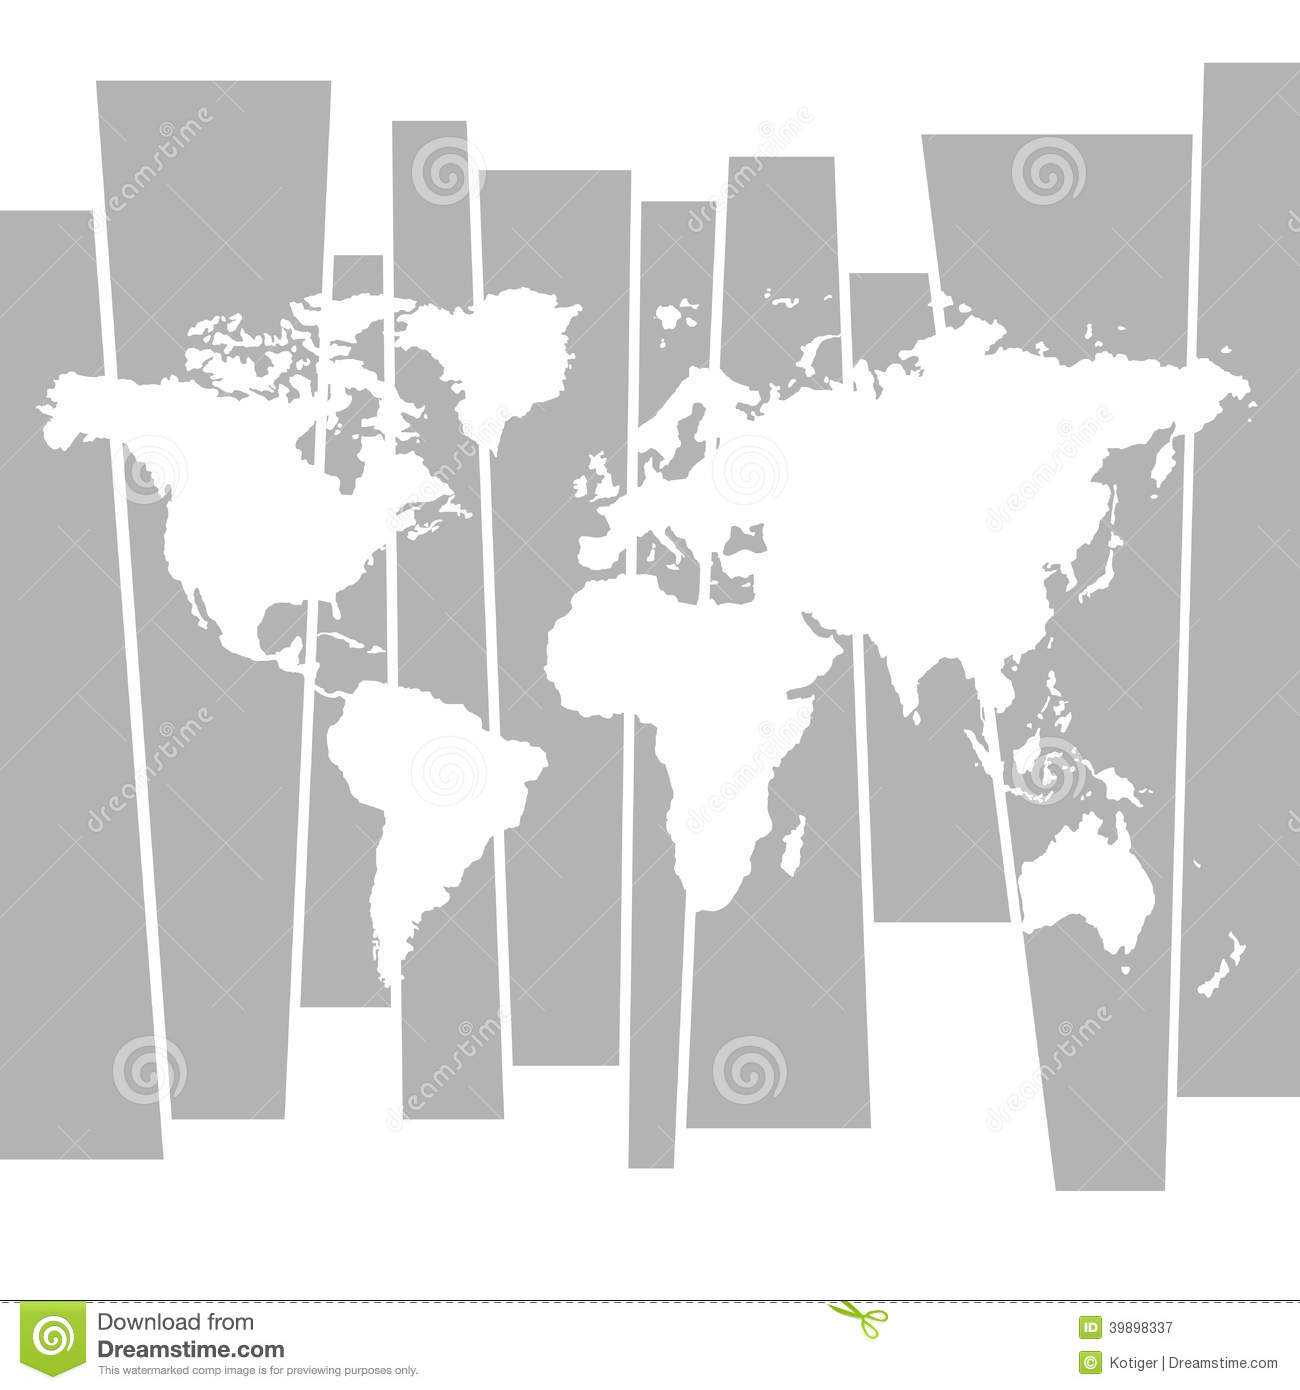 Vector world map graphic concept background stock vector vector world map graphic concept background gumiabroncs Images